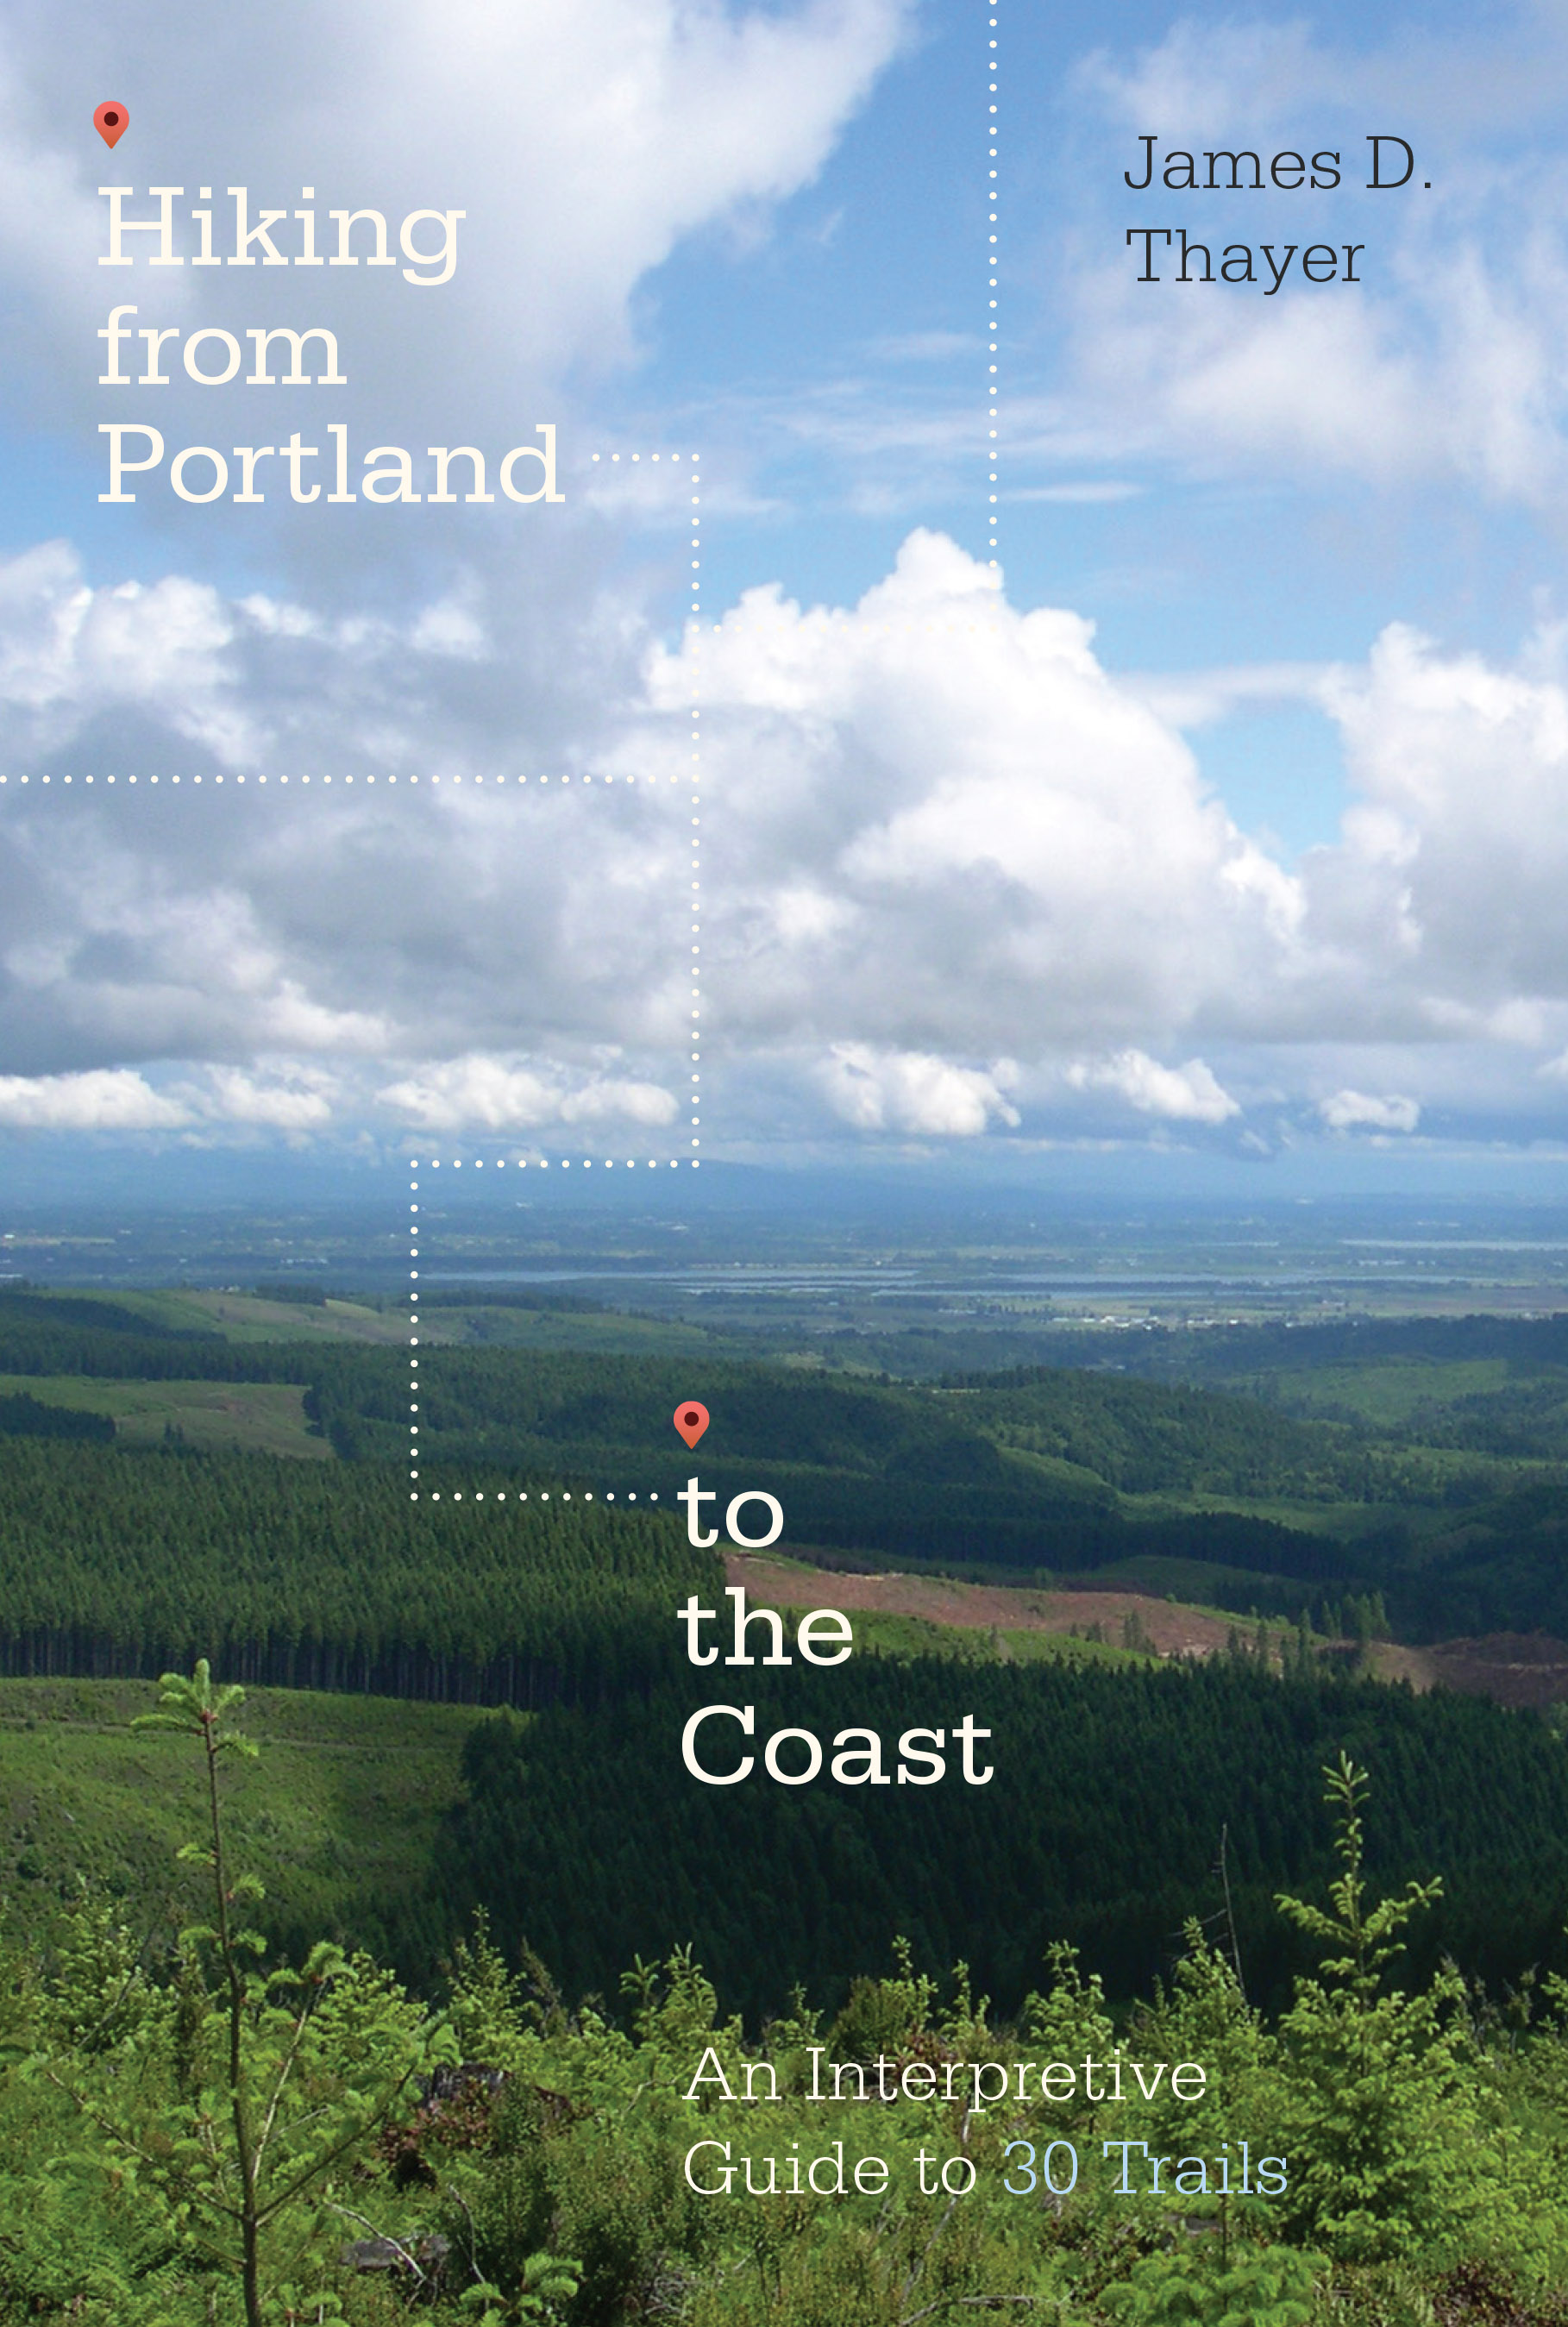 Hiking from Portland to the Coast